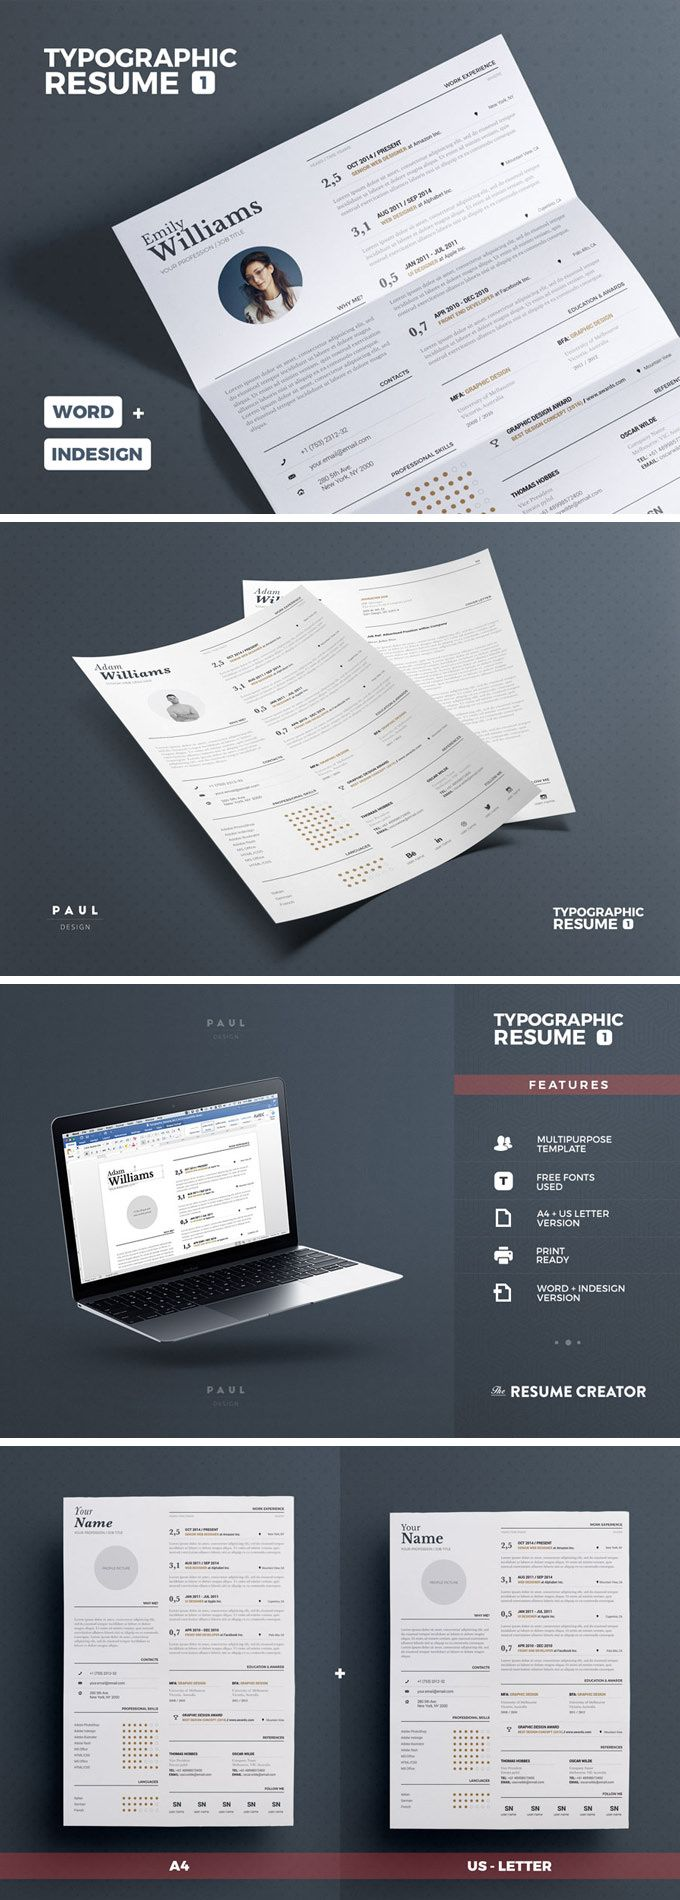 Typographic Resume Tempalate  Free Resume Adobe Indesign And Adobe